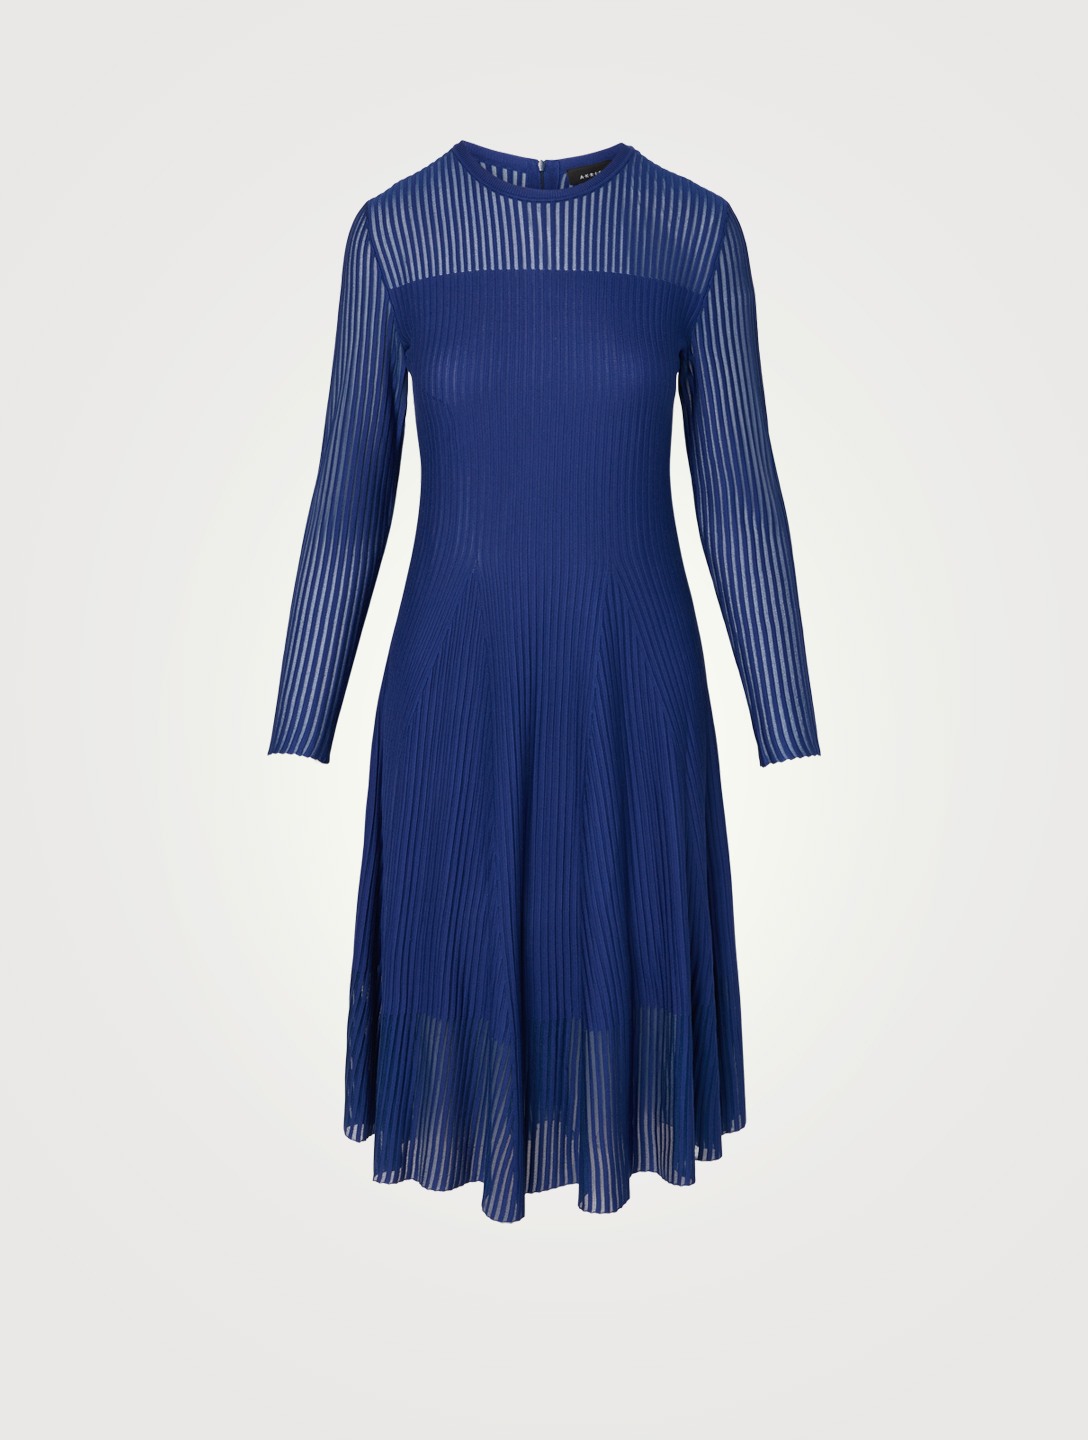 AKRIS Silk Stretch Knit Midi Dress Women's Blue